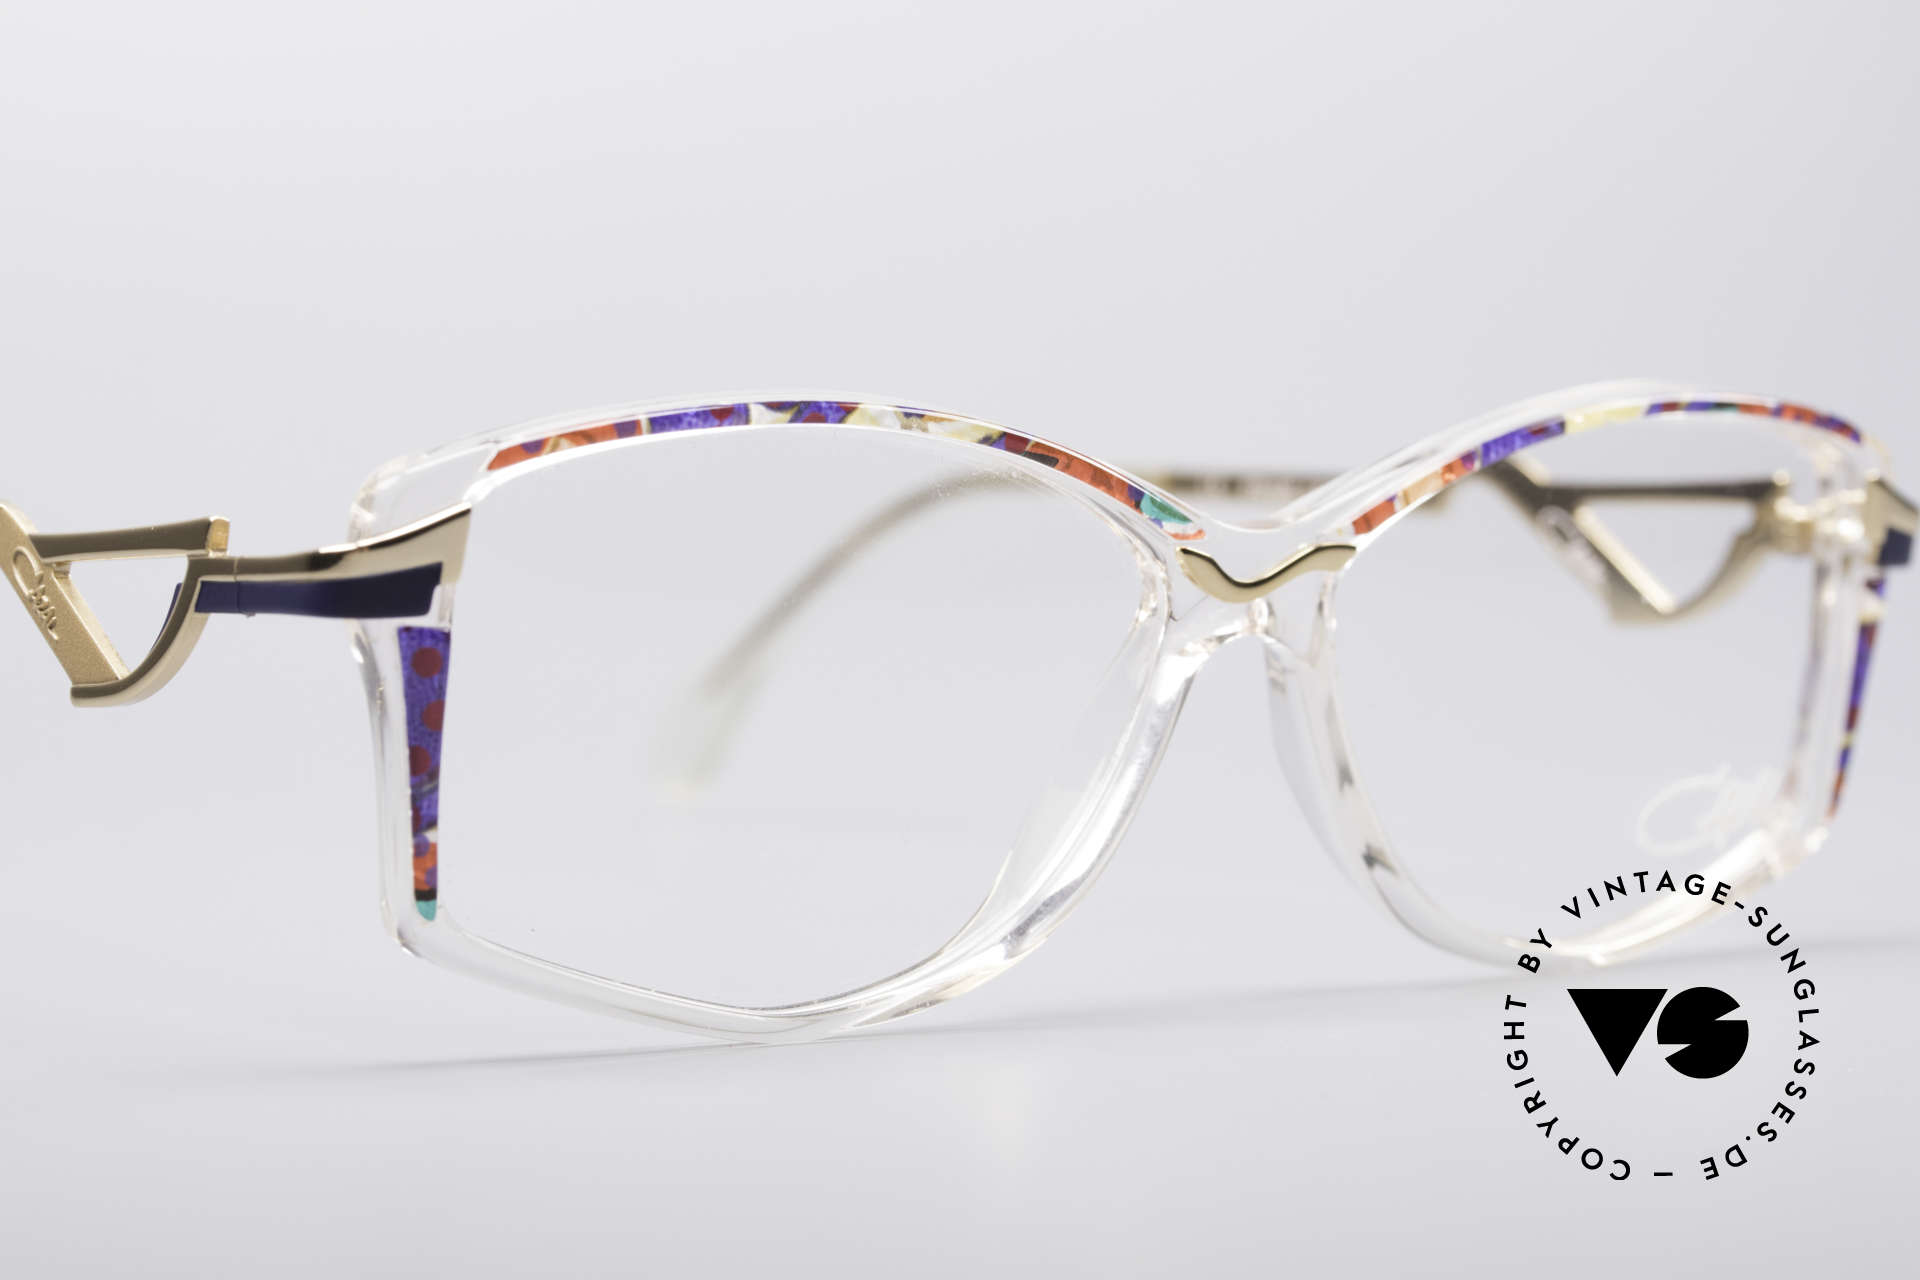 Cazal 369 90's Vintage No Retro Specs, never used (like all our rare VINTAGE CAZAL eyewear), Made for Women